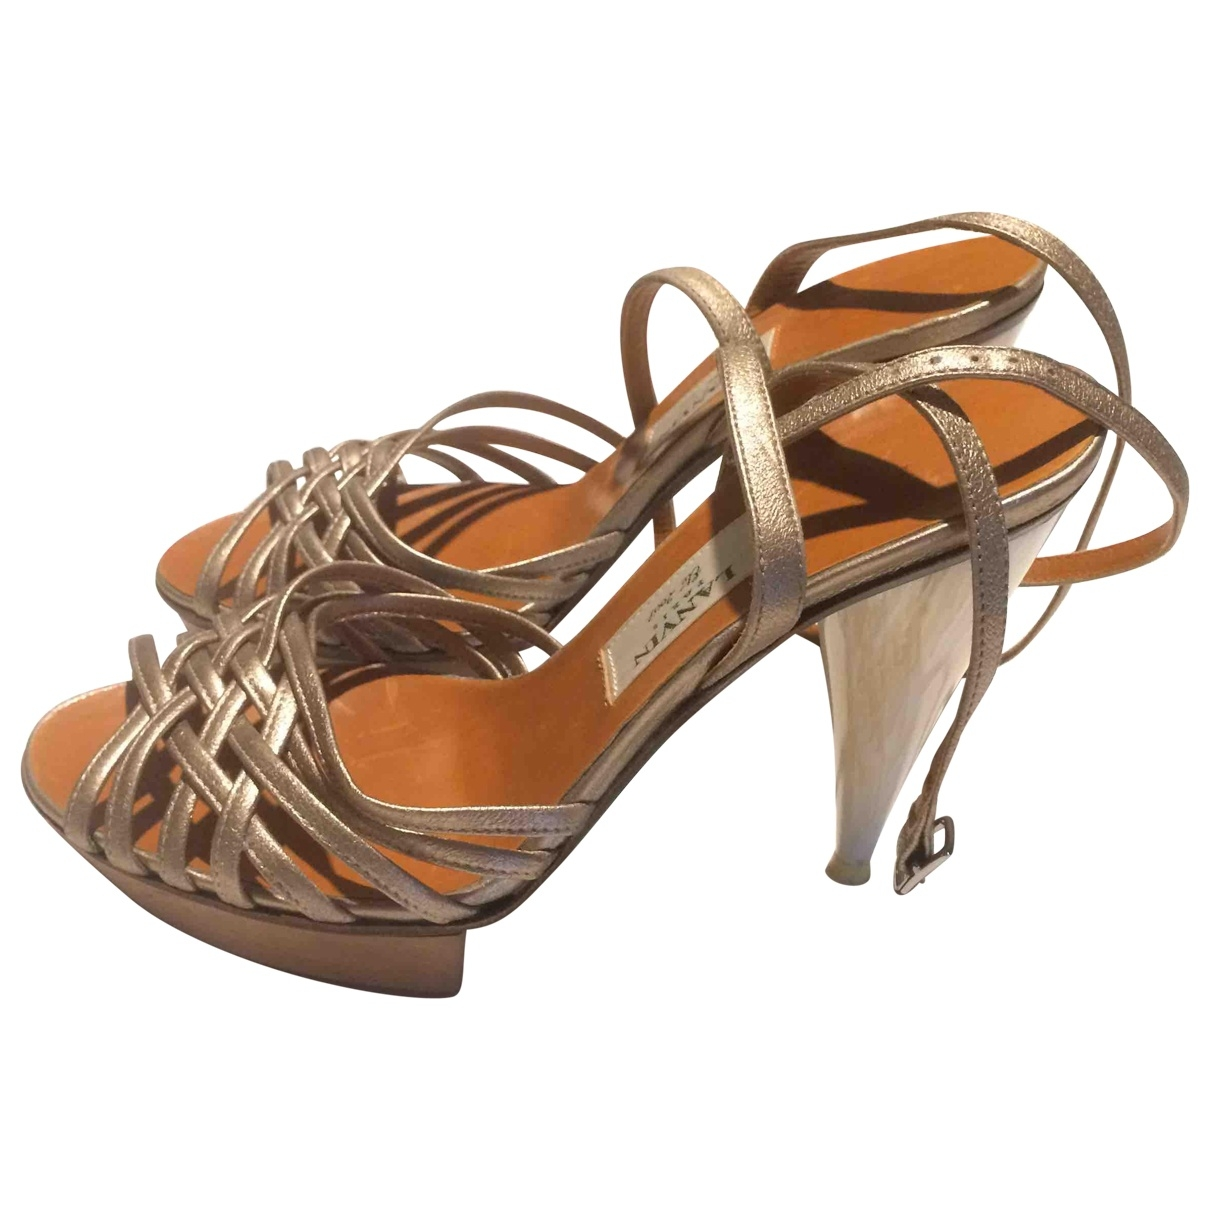 Lanvin \N Gold Leather Sandals for Women 38 EU